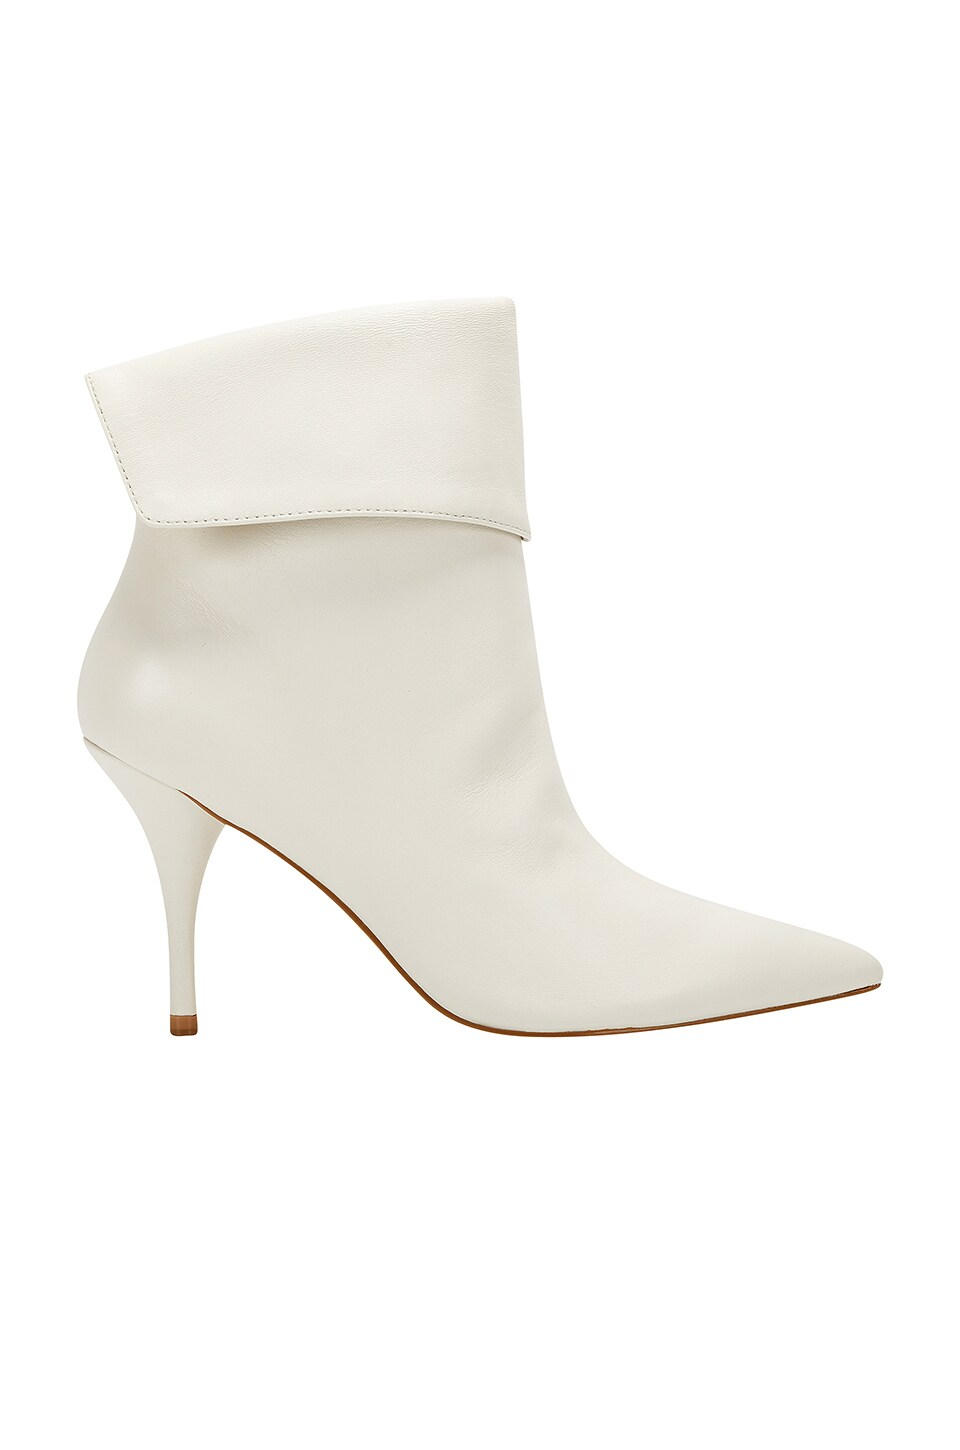 Marc Fisher X Elizabeth Sulcer Fifi Bootie in White Leather